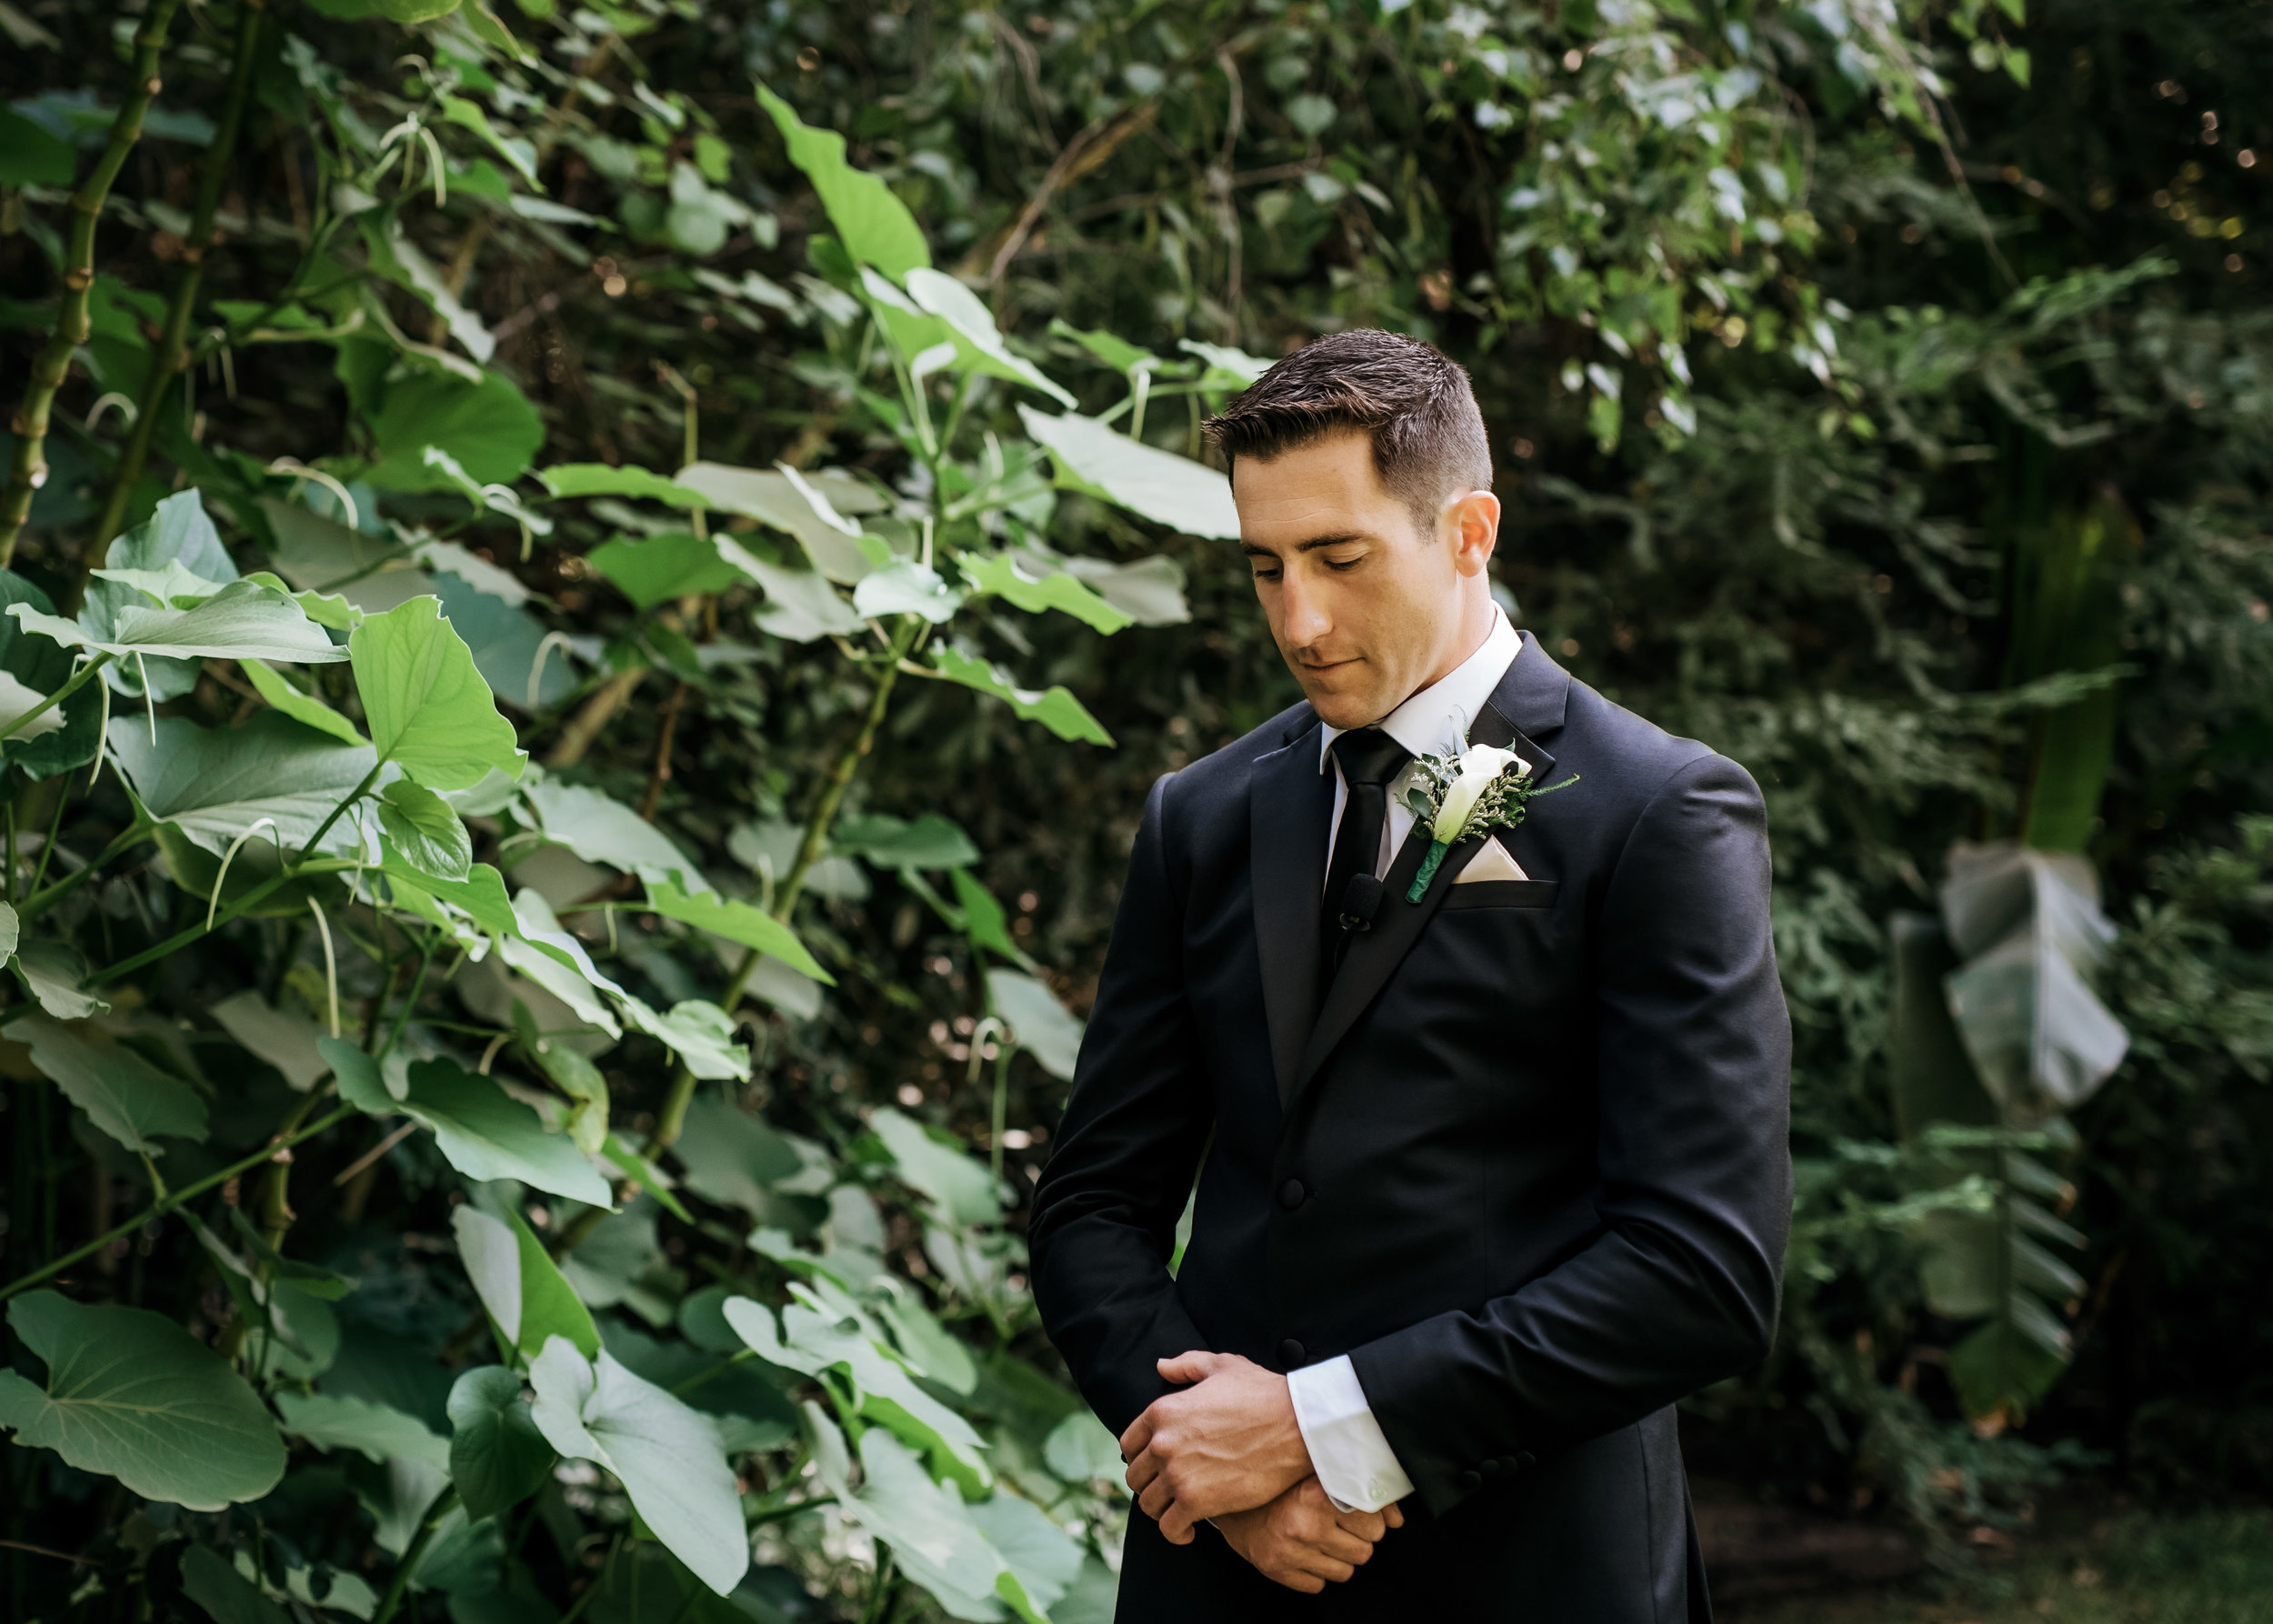 Turchin_20180825_Austinae-Brent-Wedding_107.jpg